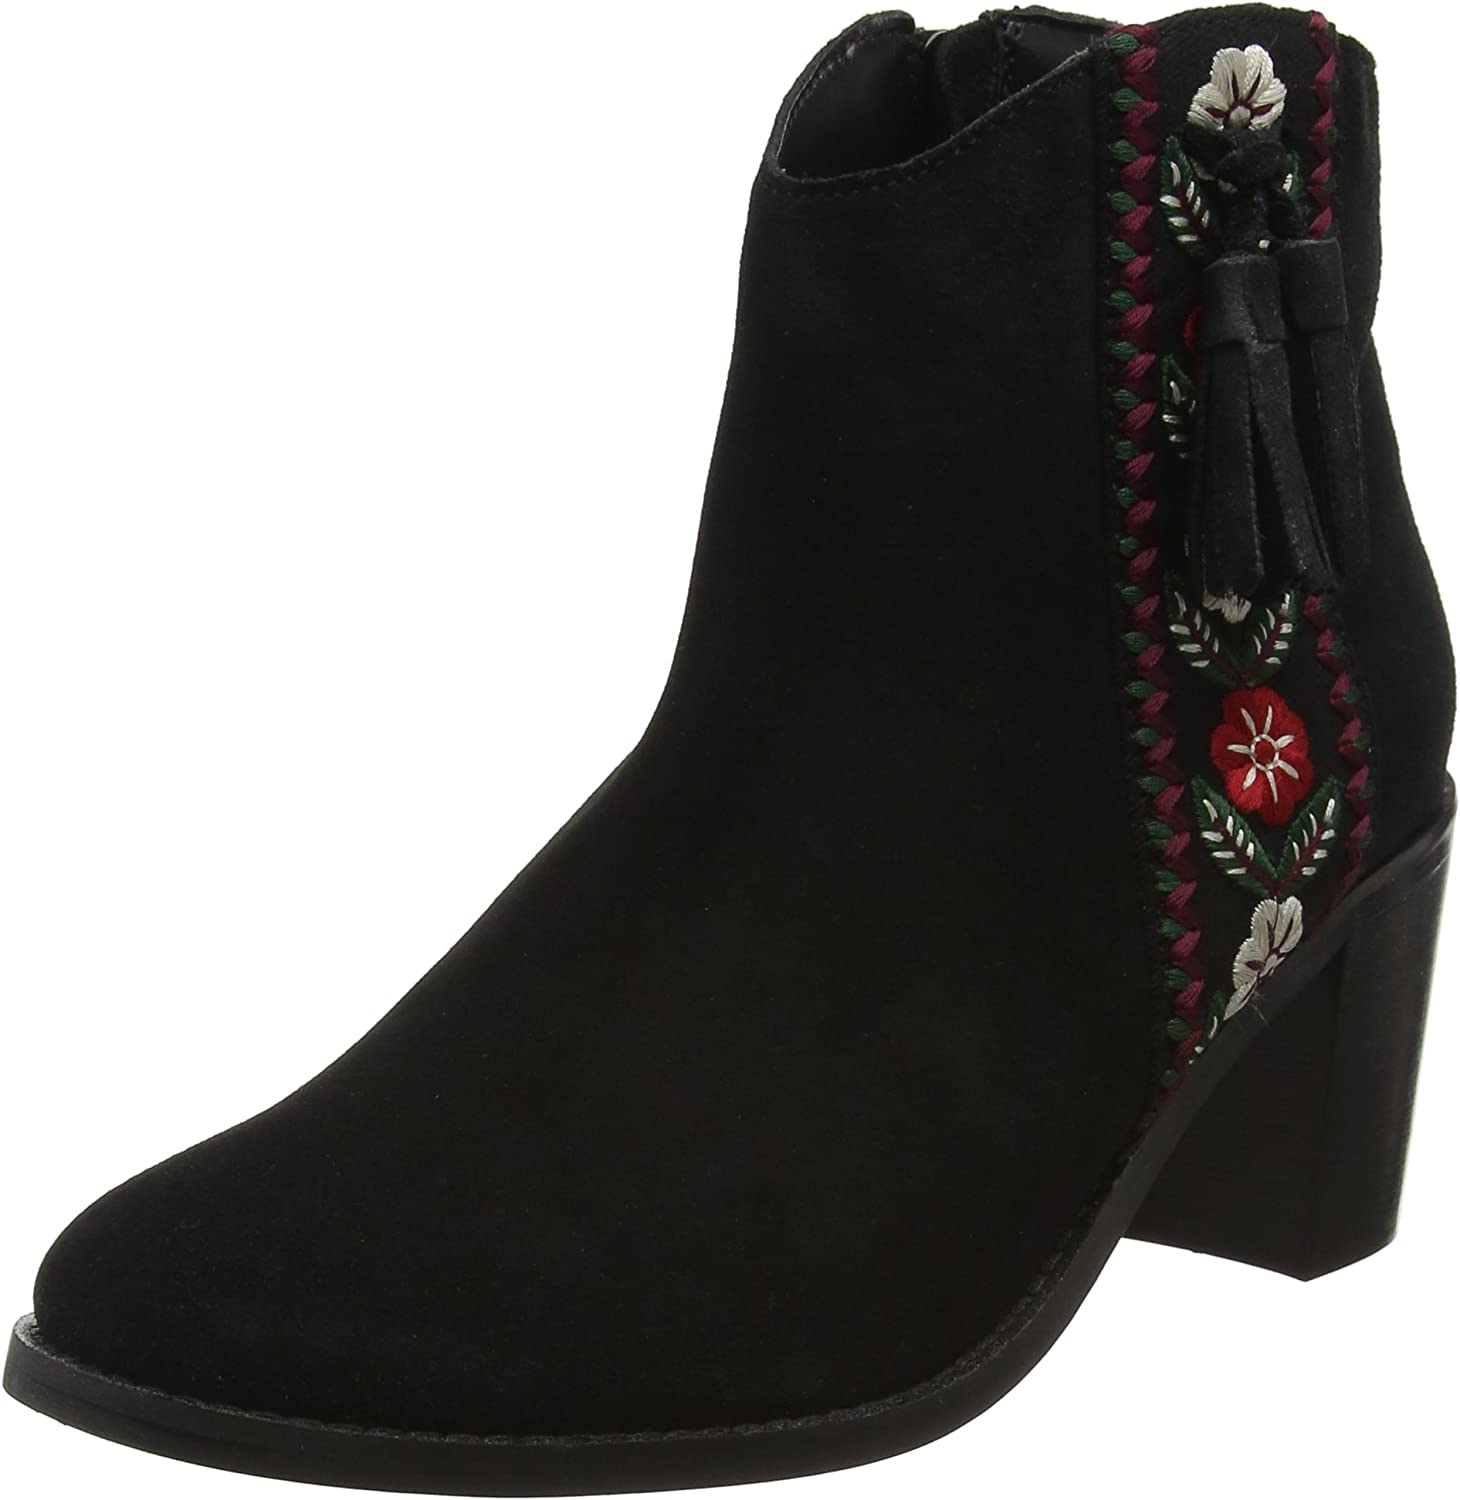 Joe Browns Womens Heeled Western Style Suede Ankle Boot with Side Tassel and Embroided Detail Black